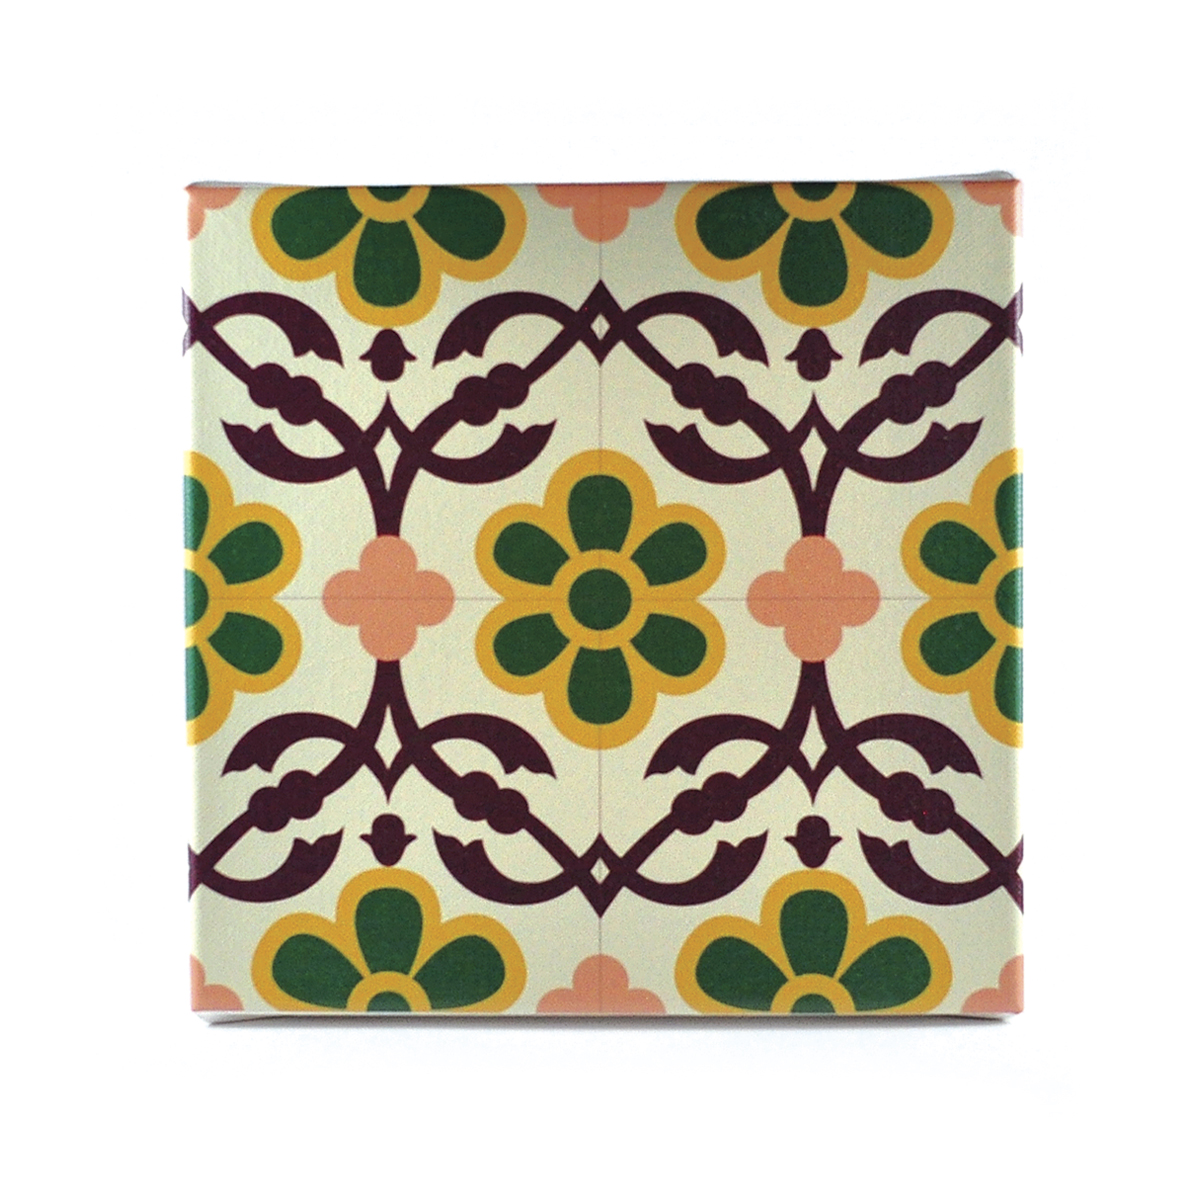 Malta Tile Canvas Block, pattern no.12